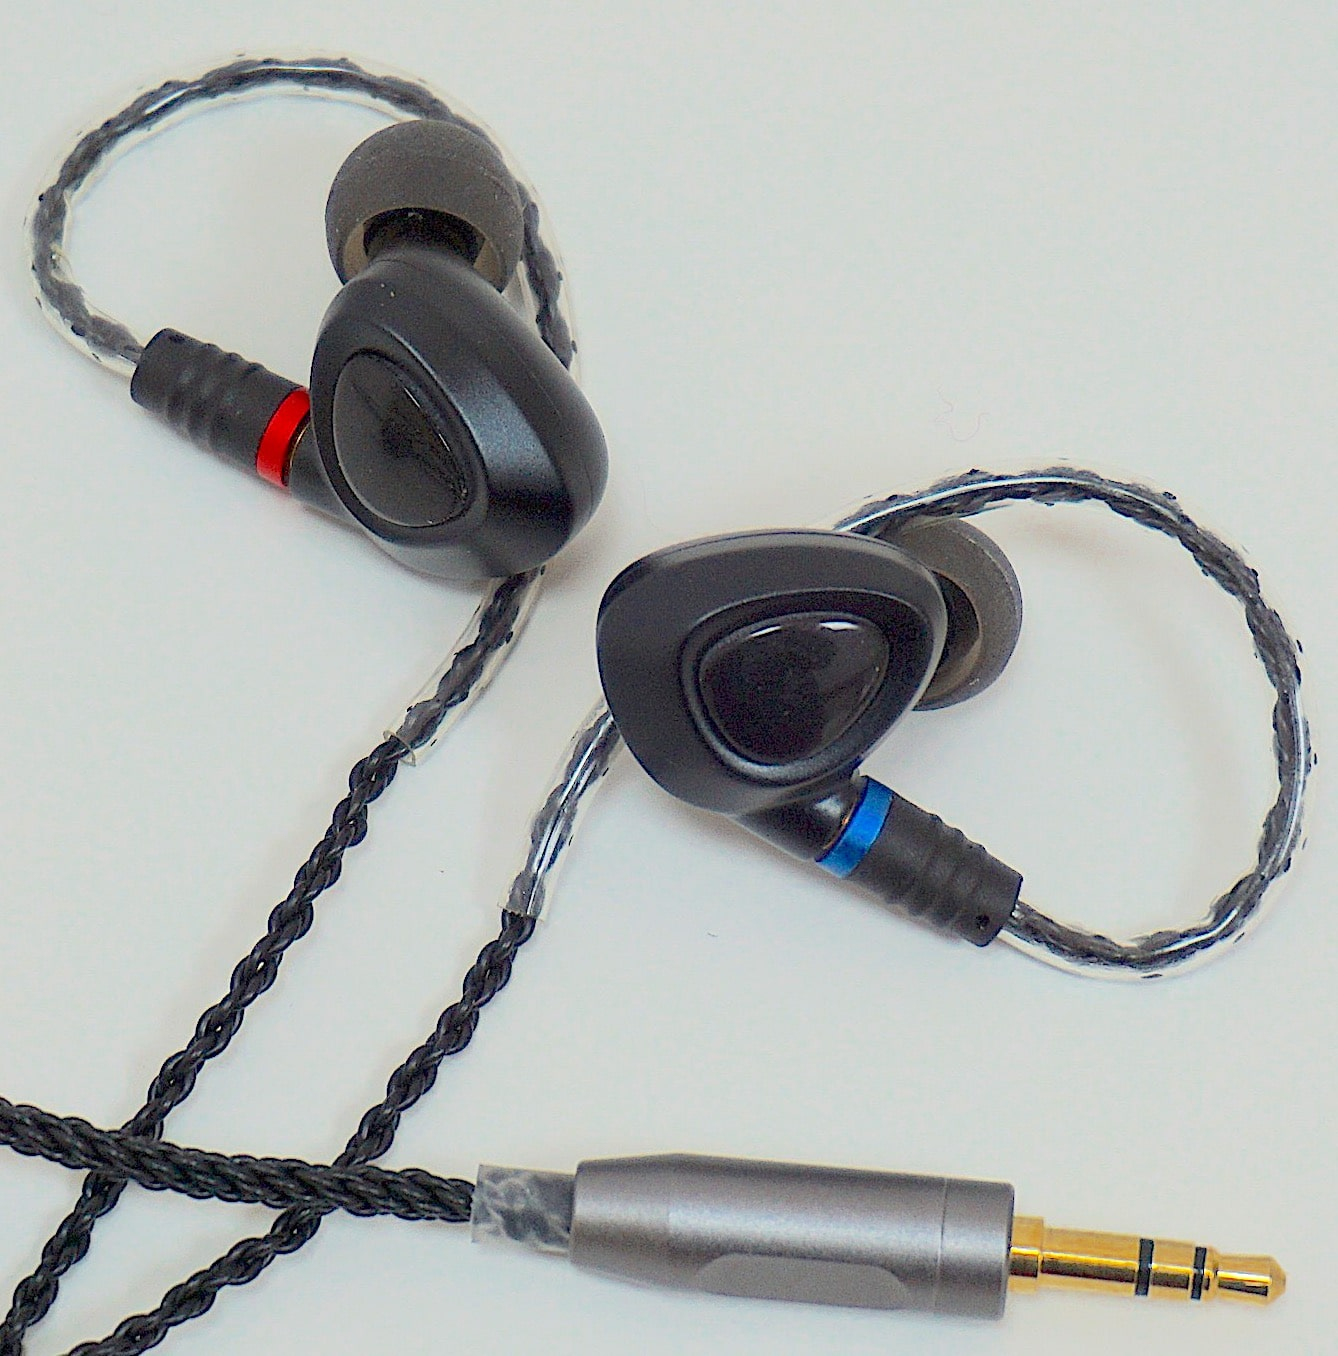 ME100 Earphones From Shanling - The Audiophile Man